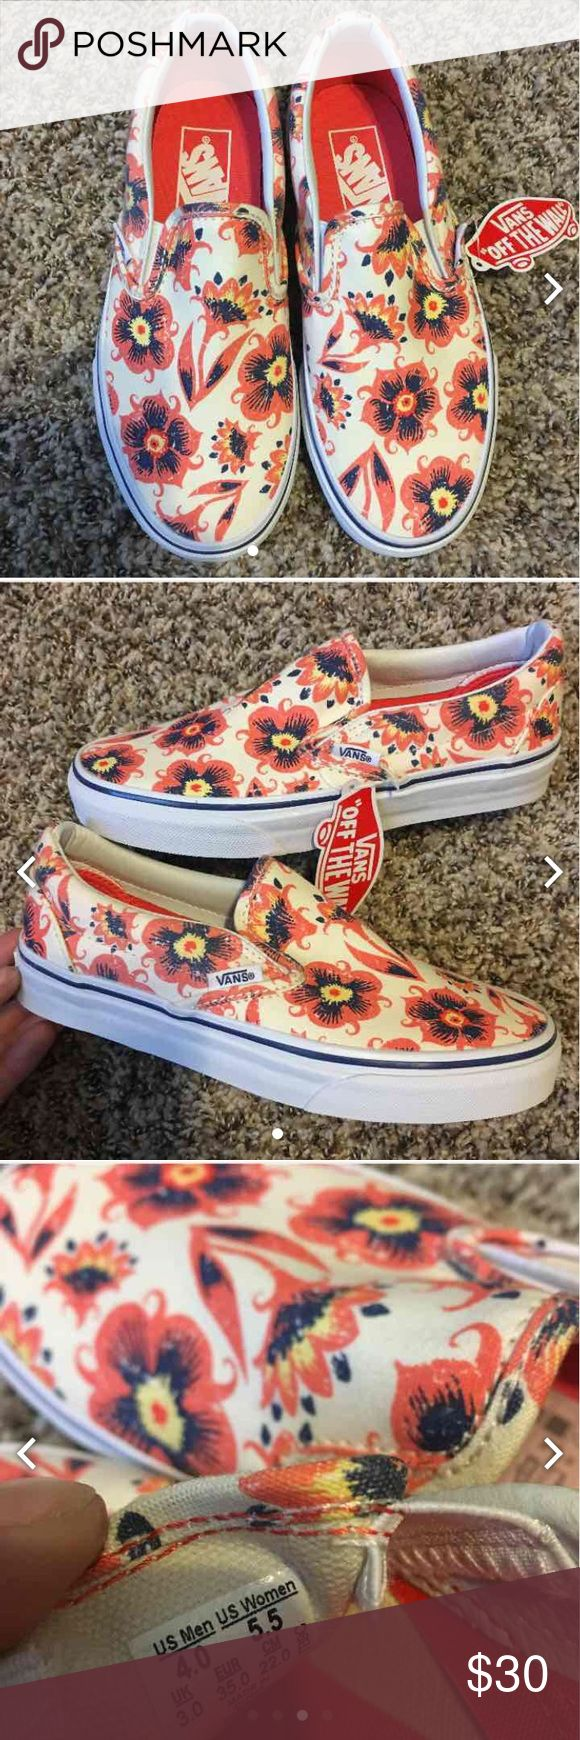 New in box Vans slip on Coral floral low tops Never worn! Comes with original box! Great condition! Please use offer button to make any reasonable offers. Vans Shoes